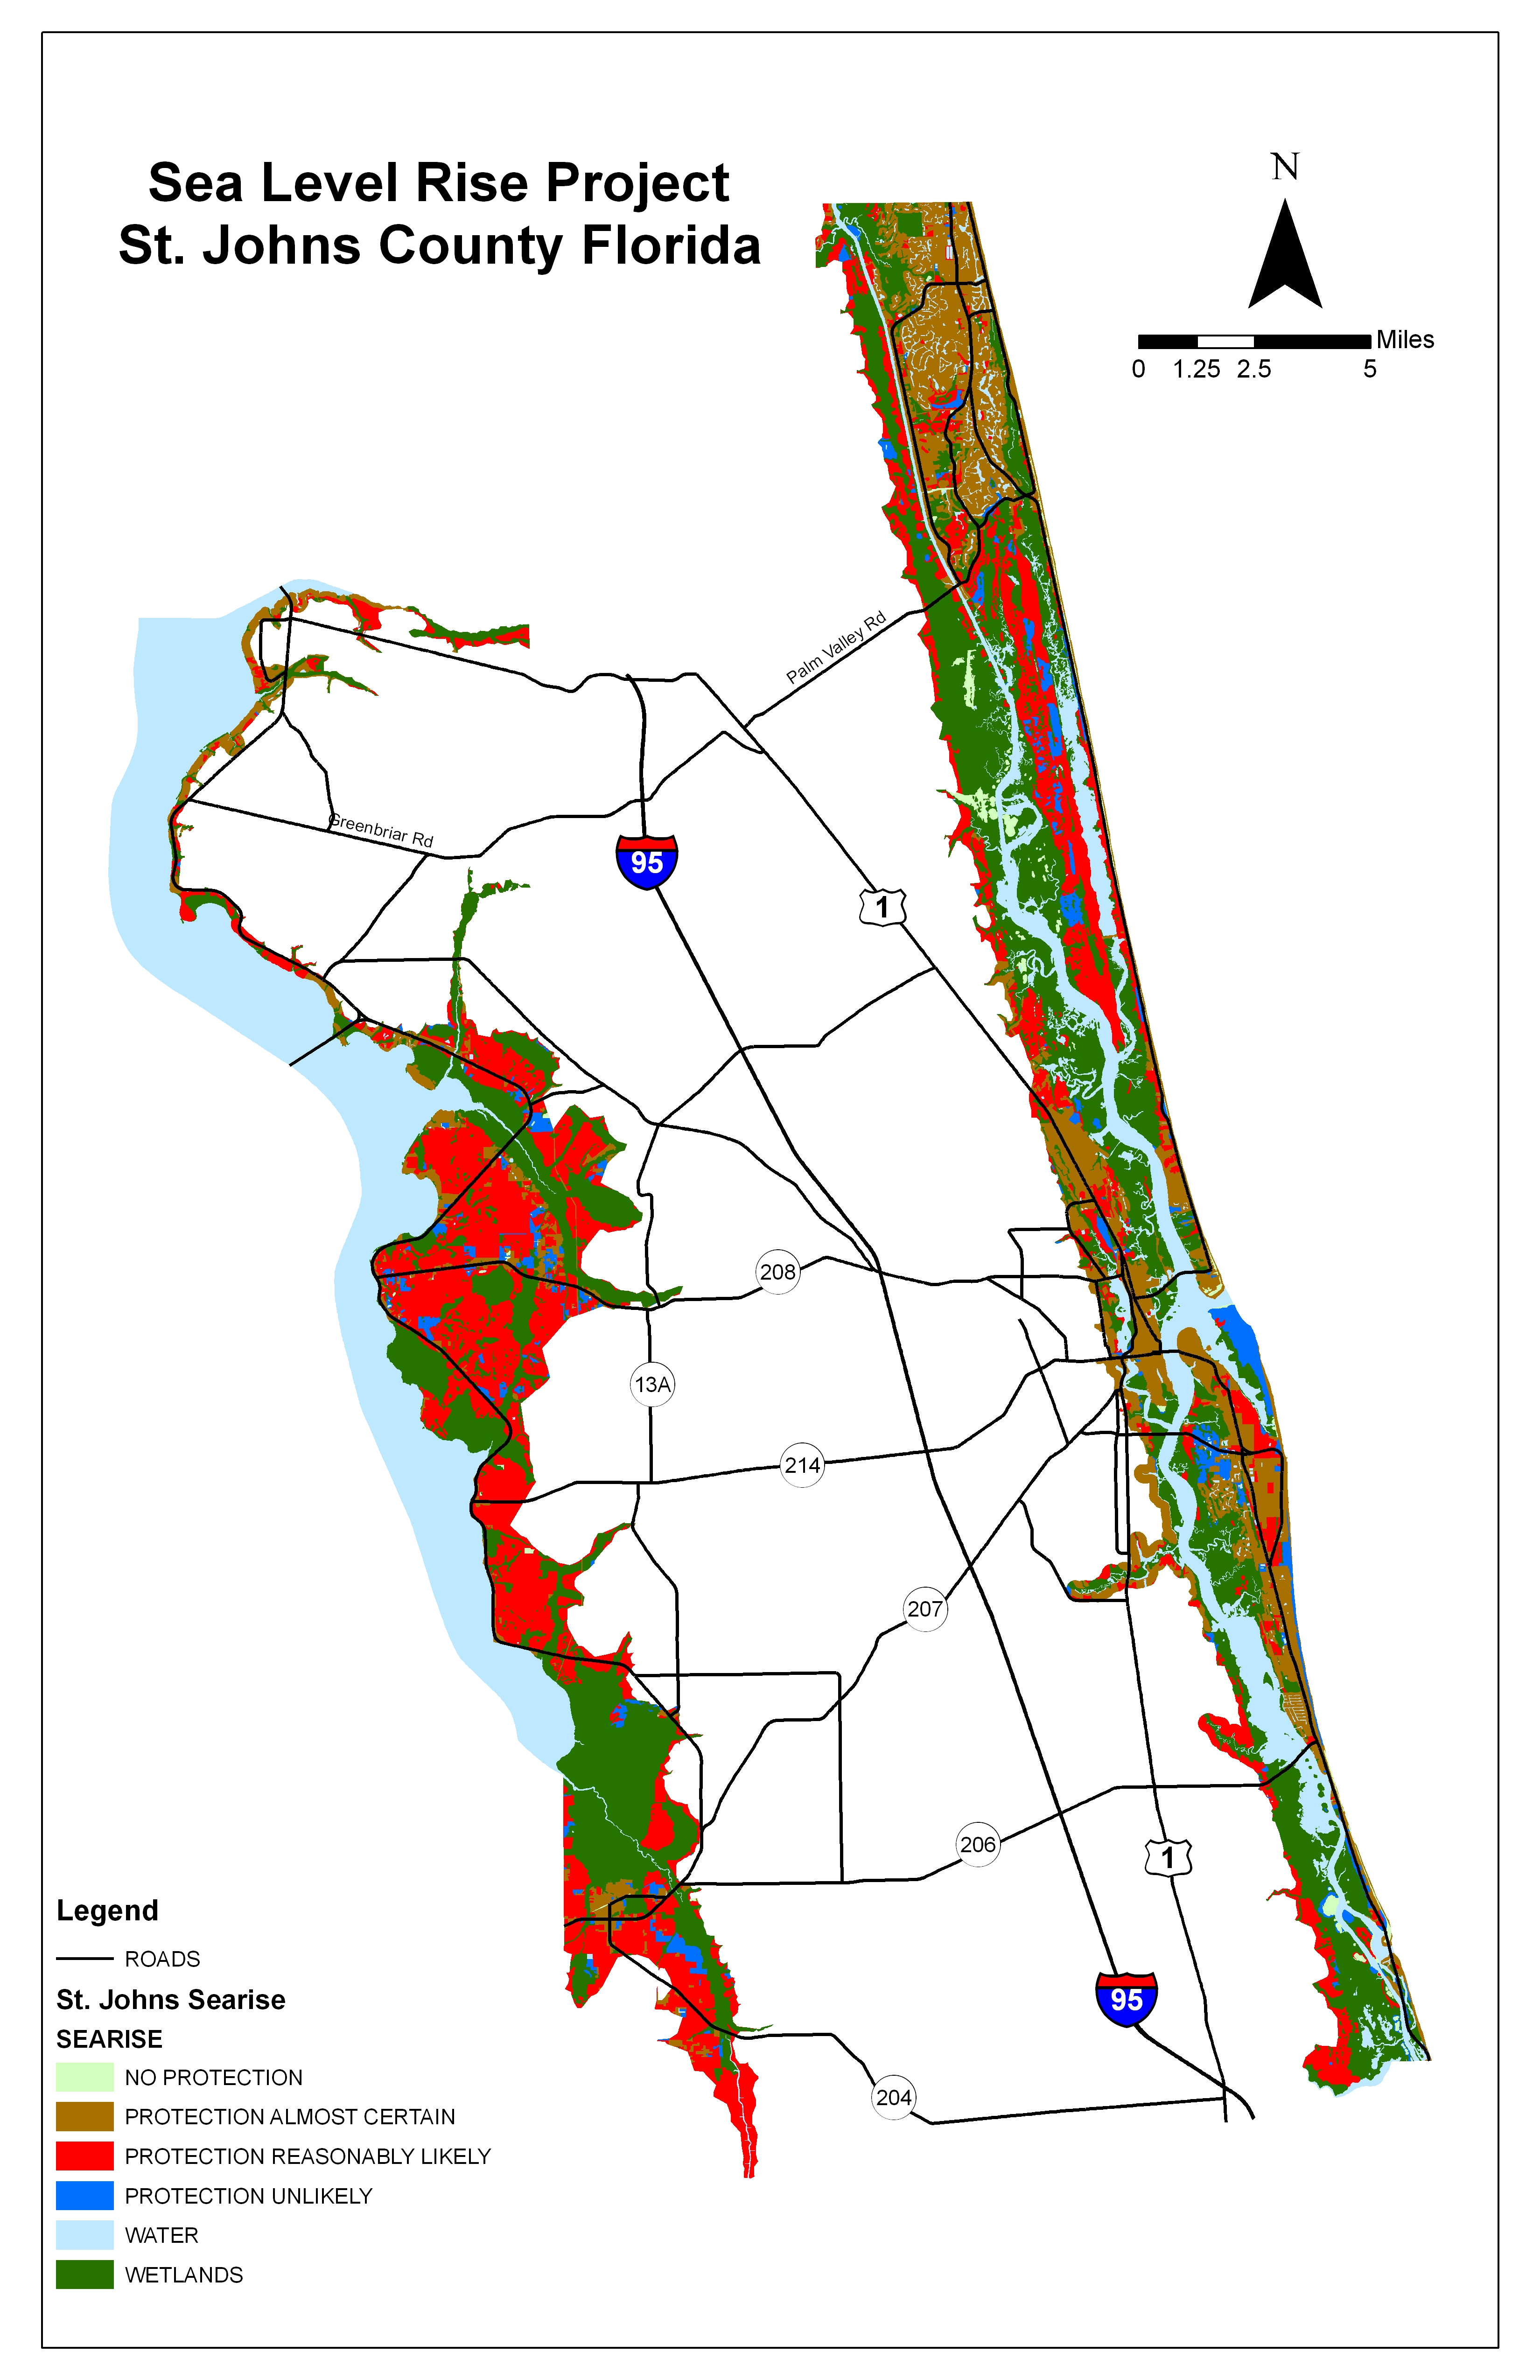 Sea Level Rise Planning Maps Likelihood Of Shore Protection In - Florida map rising sea levels